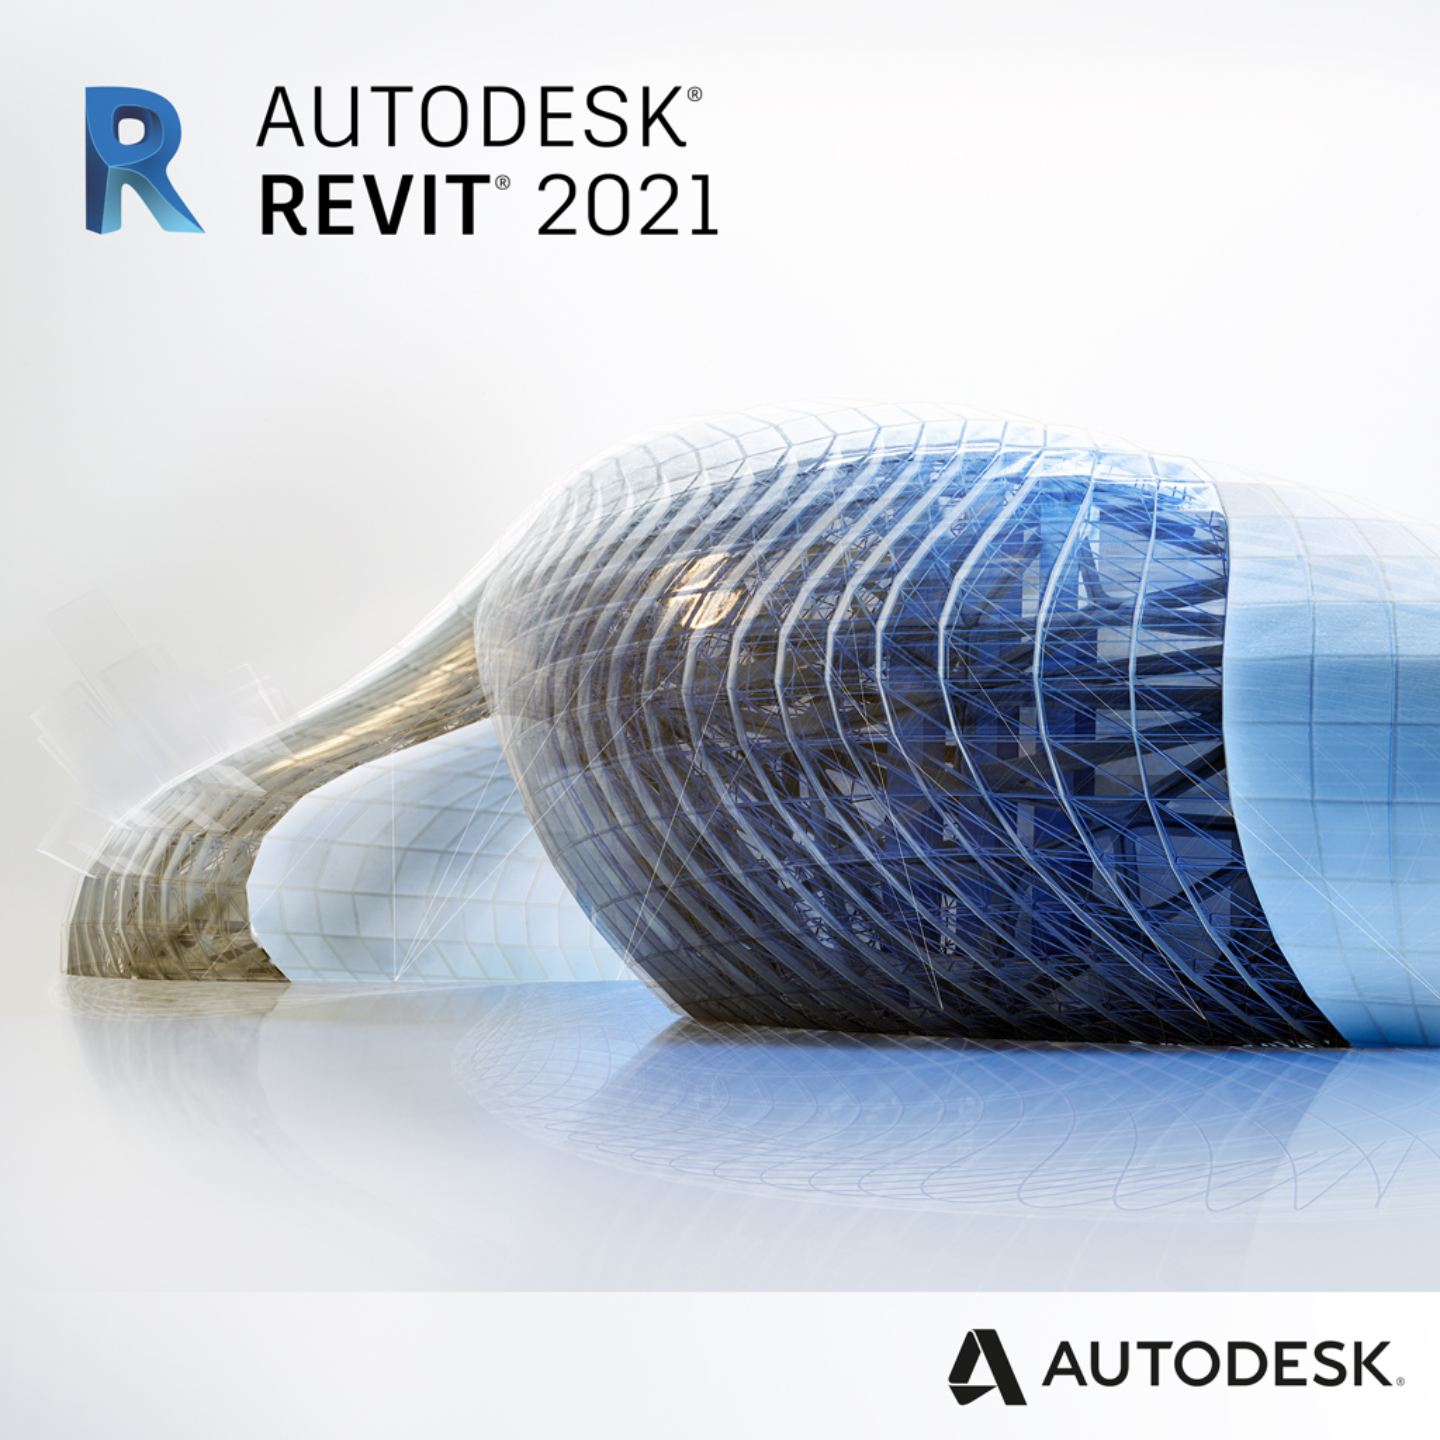 Autodesk Revit 2021 Commercial (1-Year Subscription)